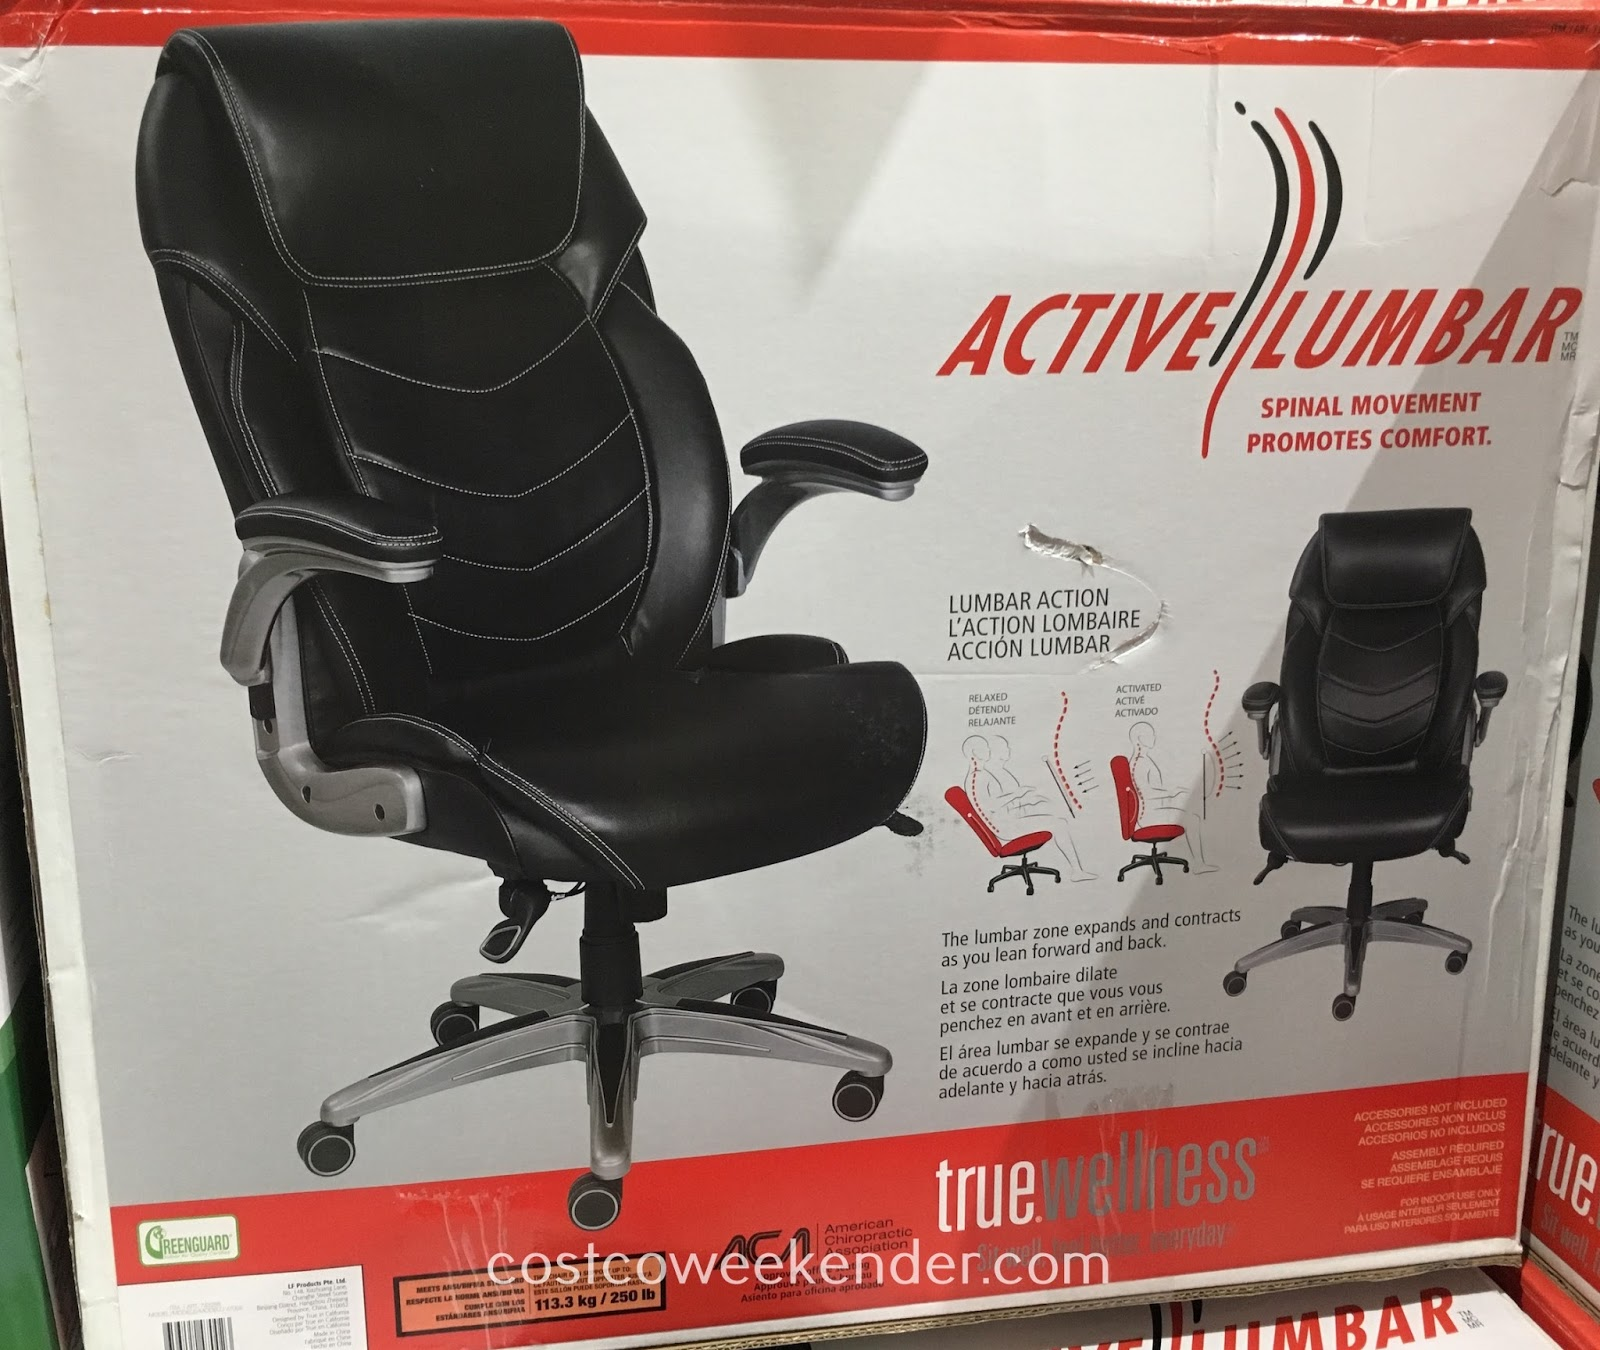 Desk Chair Leans Forward Office Model True Innovations Wellness Active Lumbar